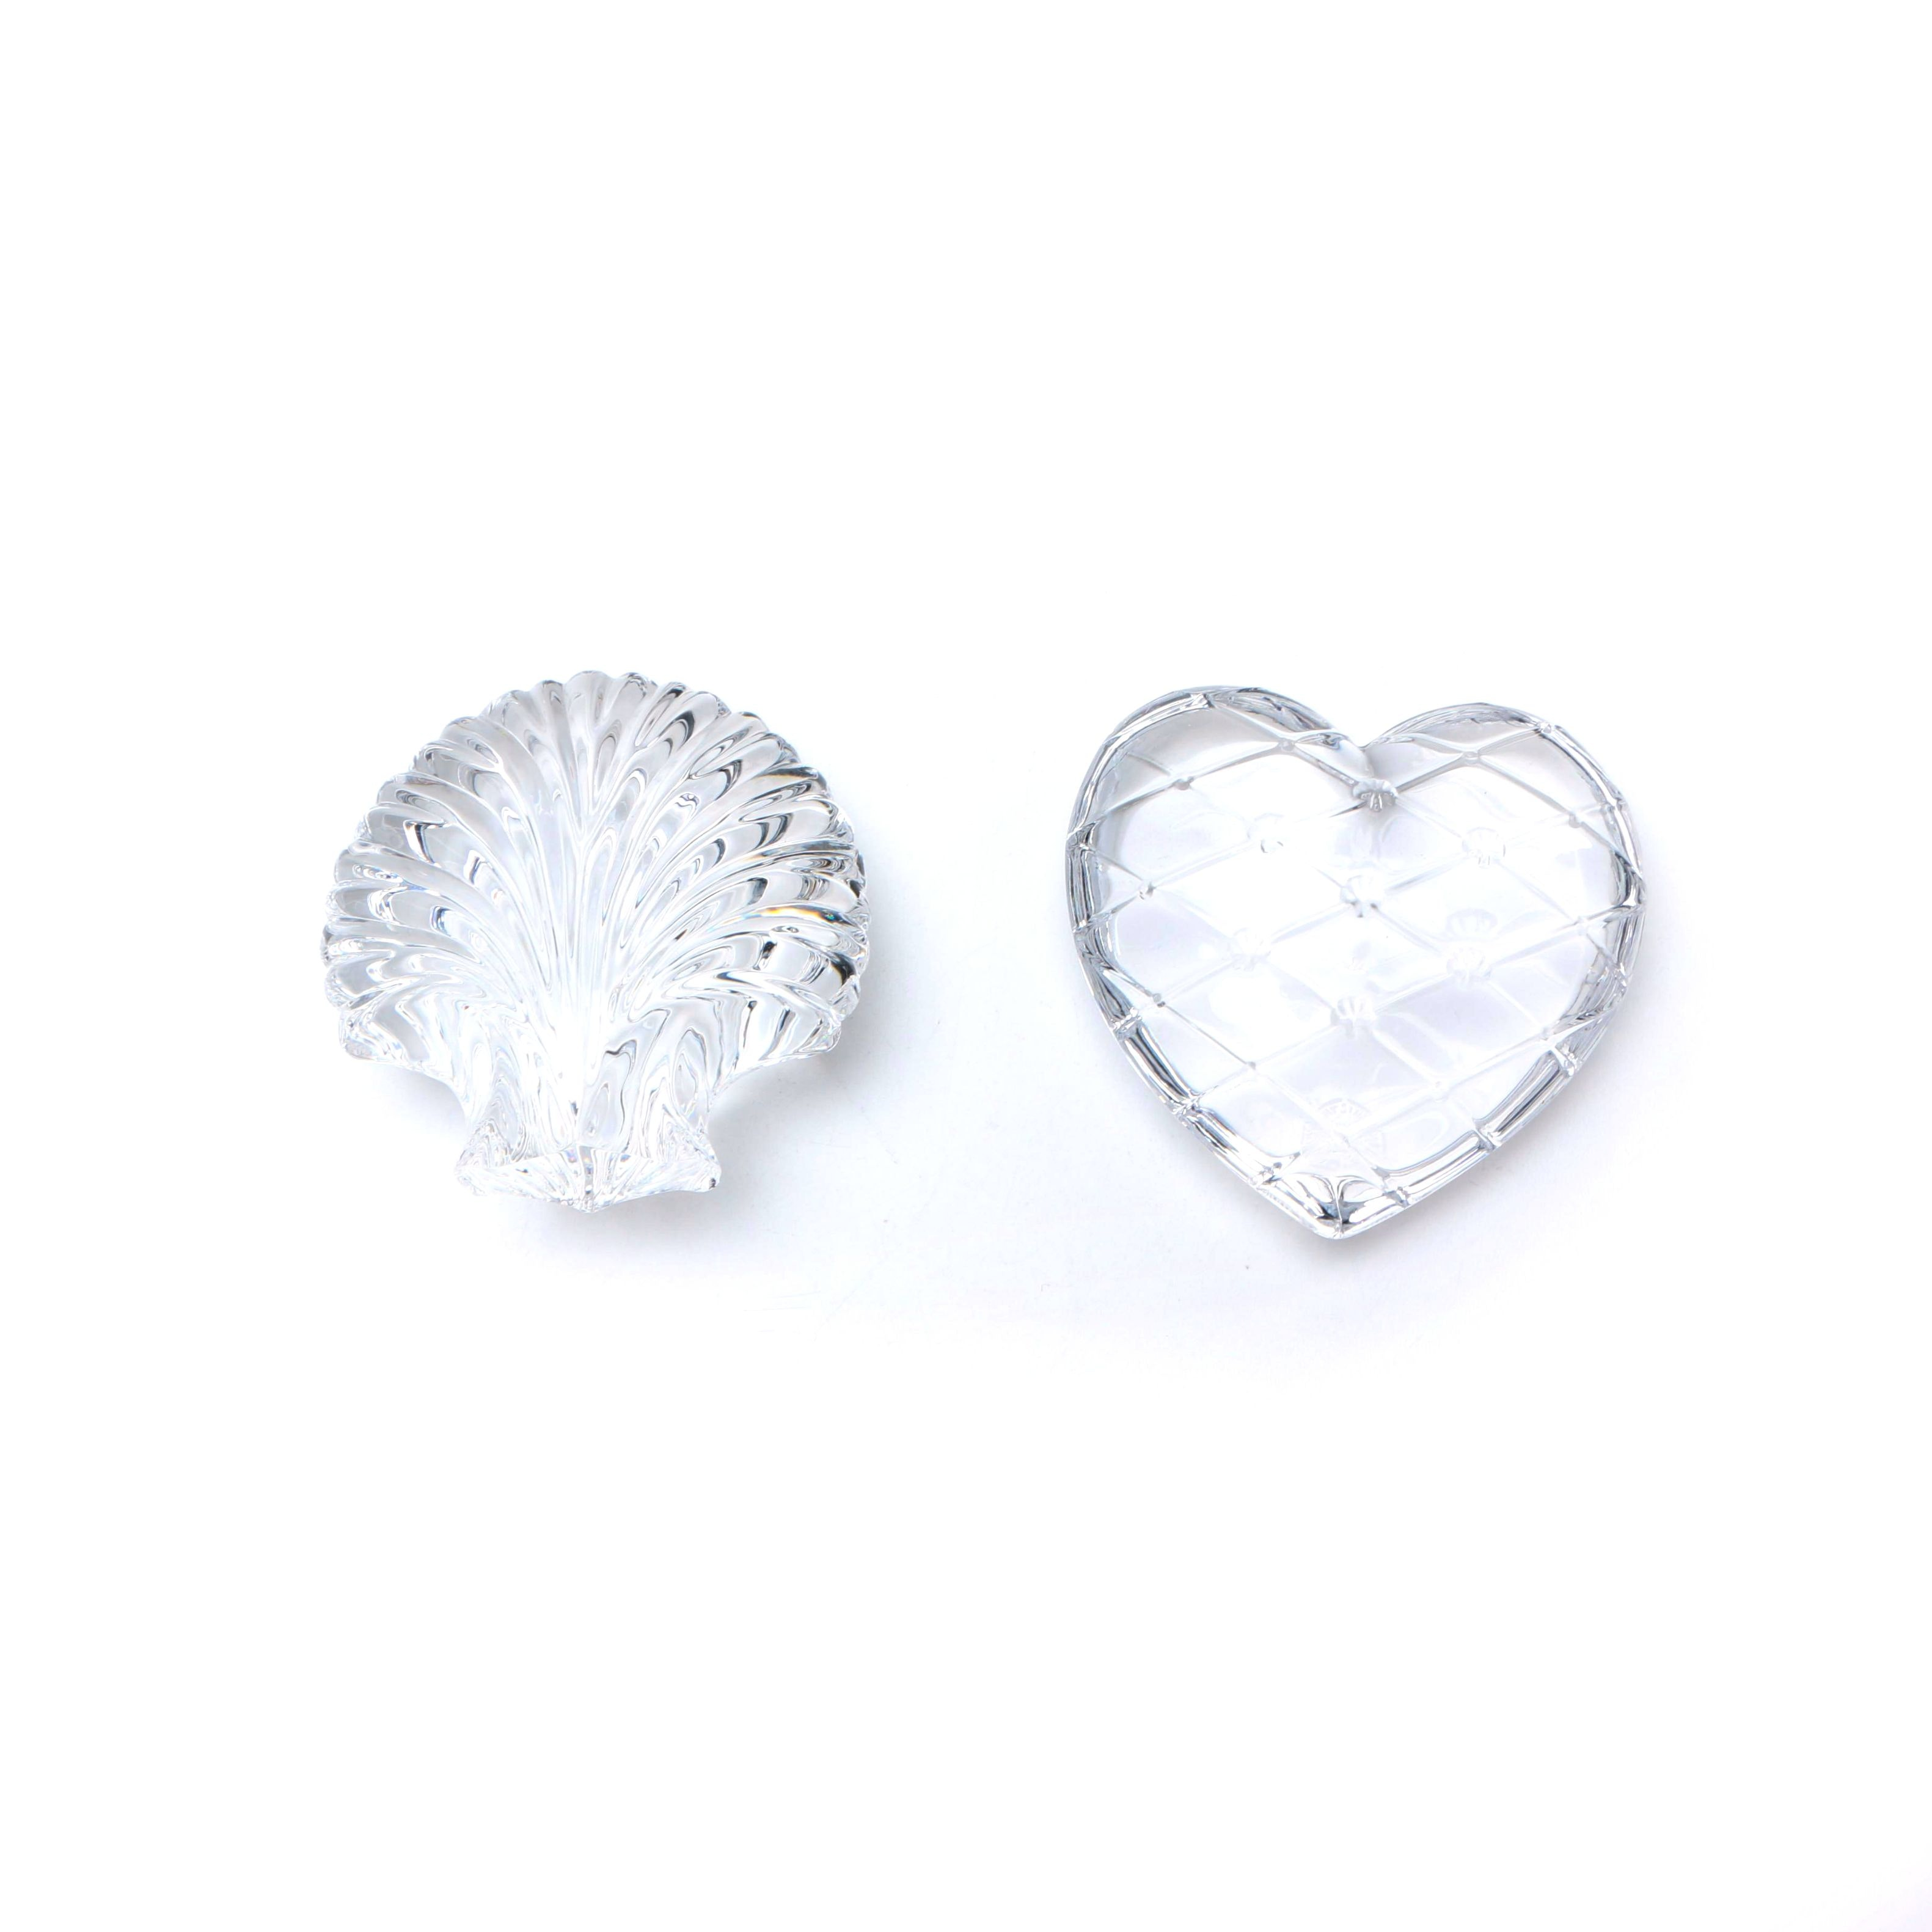 Crystal St. Louis France Shell and Heart Paperweights